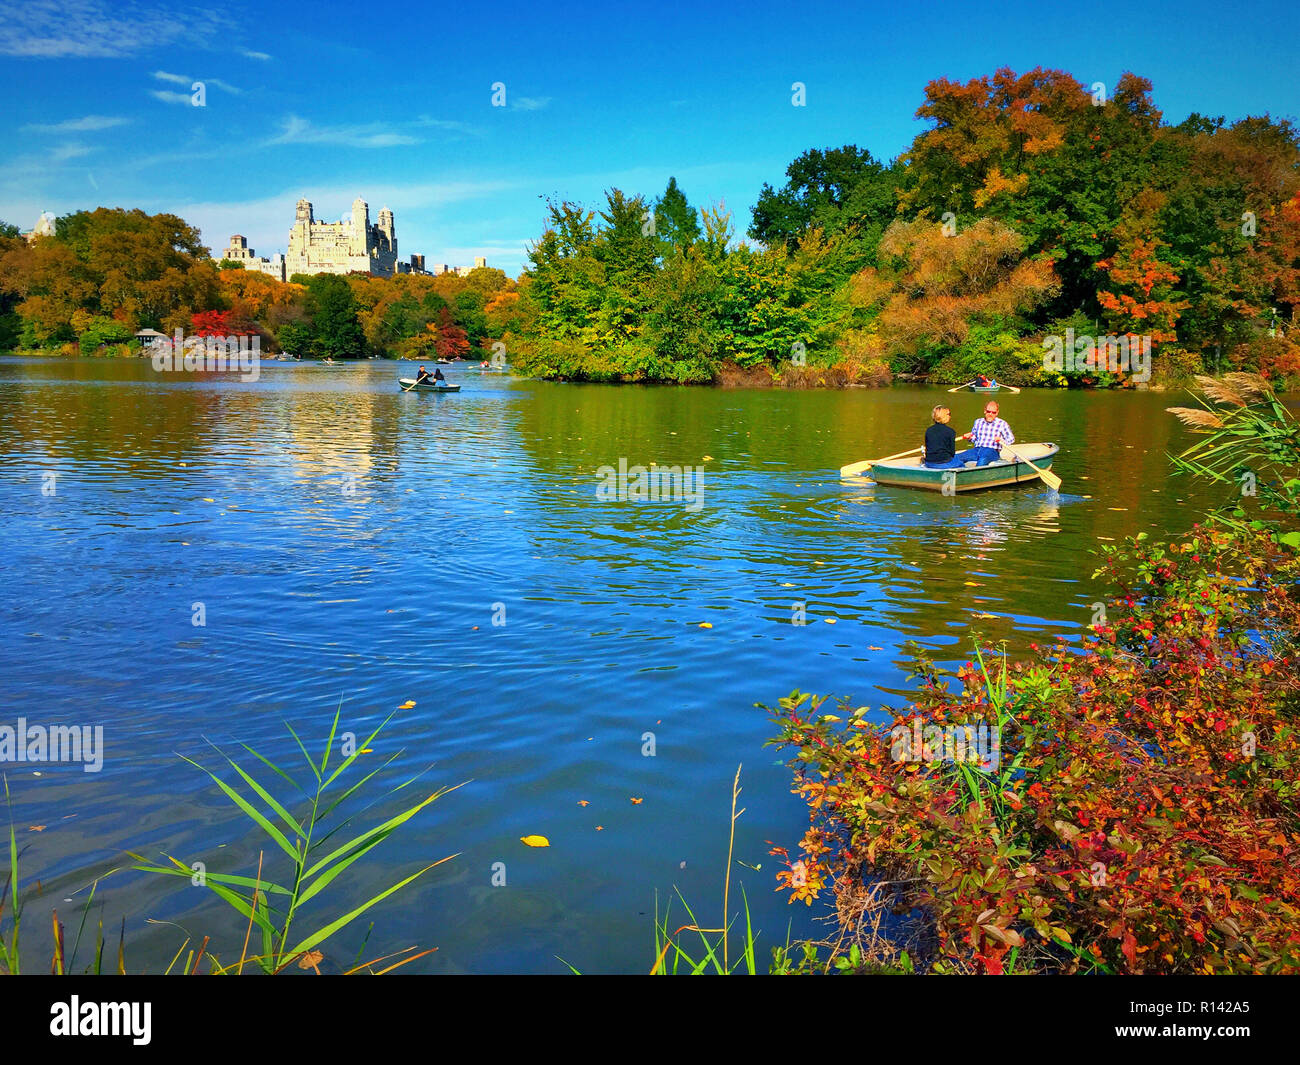 Central Park with Beresford Apartments Building in Background, NYC - Stock Image